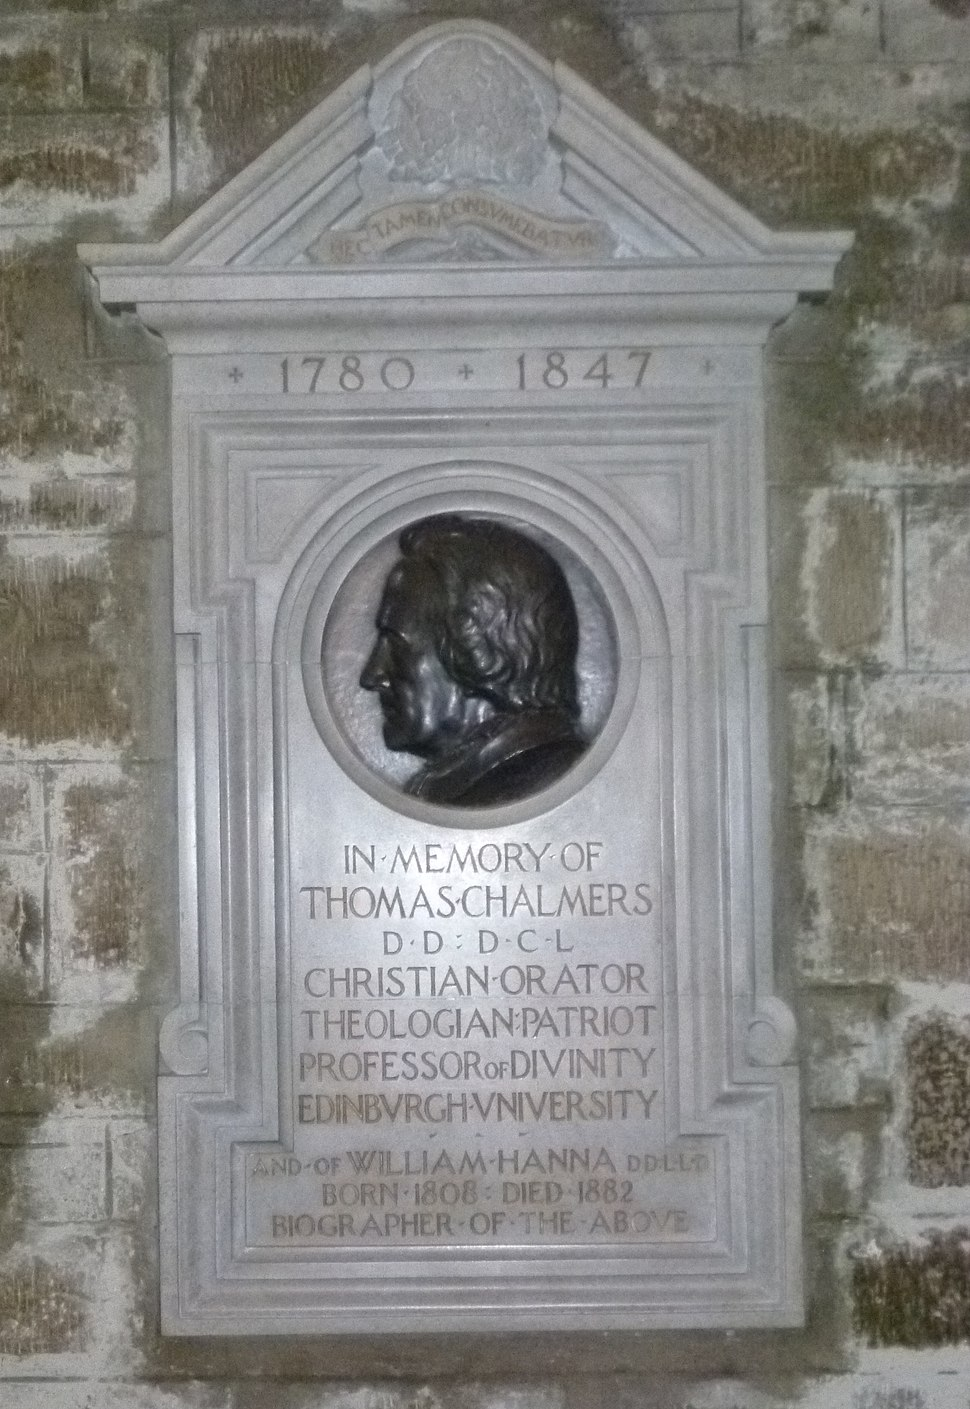 Thomas Chalmers memorial plaque, St. Giles, Edinburgh